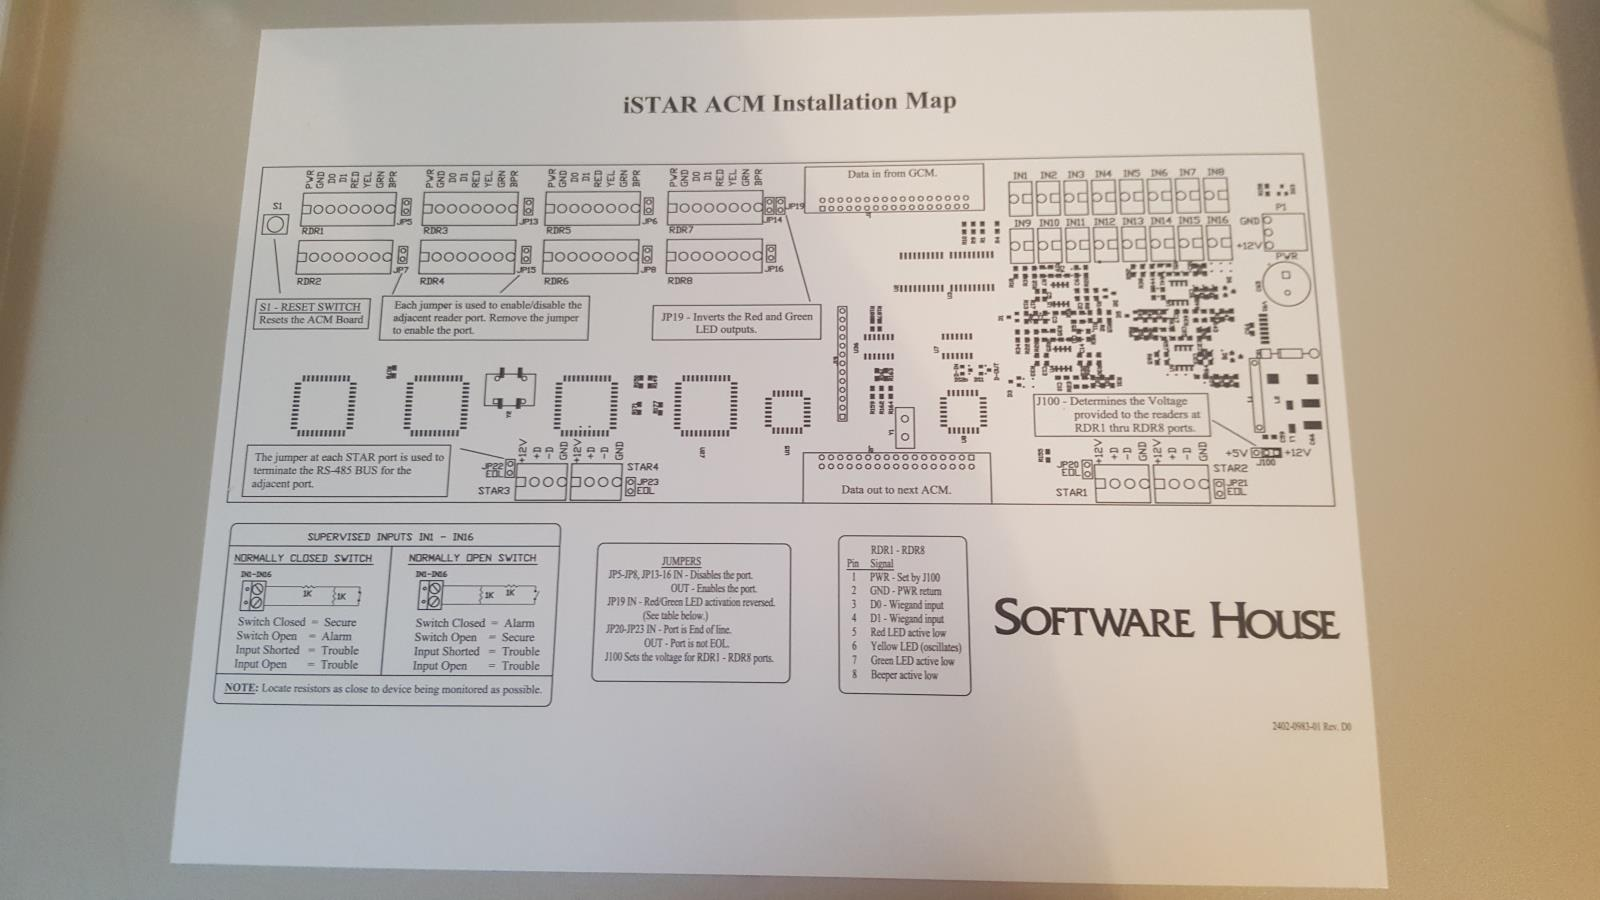 Ccure Software House Istar Pro Star016w 32 Readers Ebay Panel Wiring Diagram